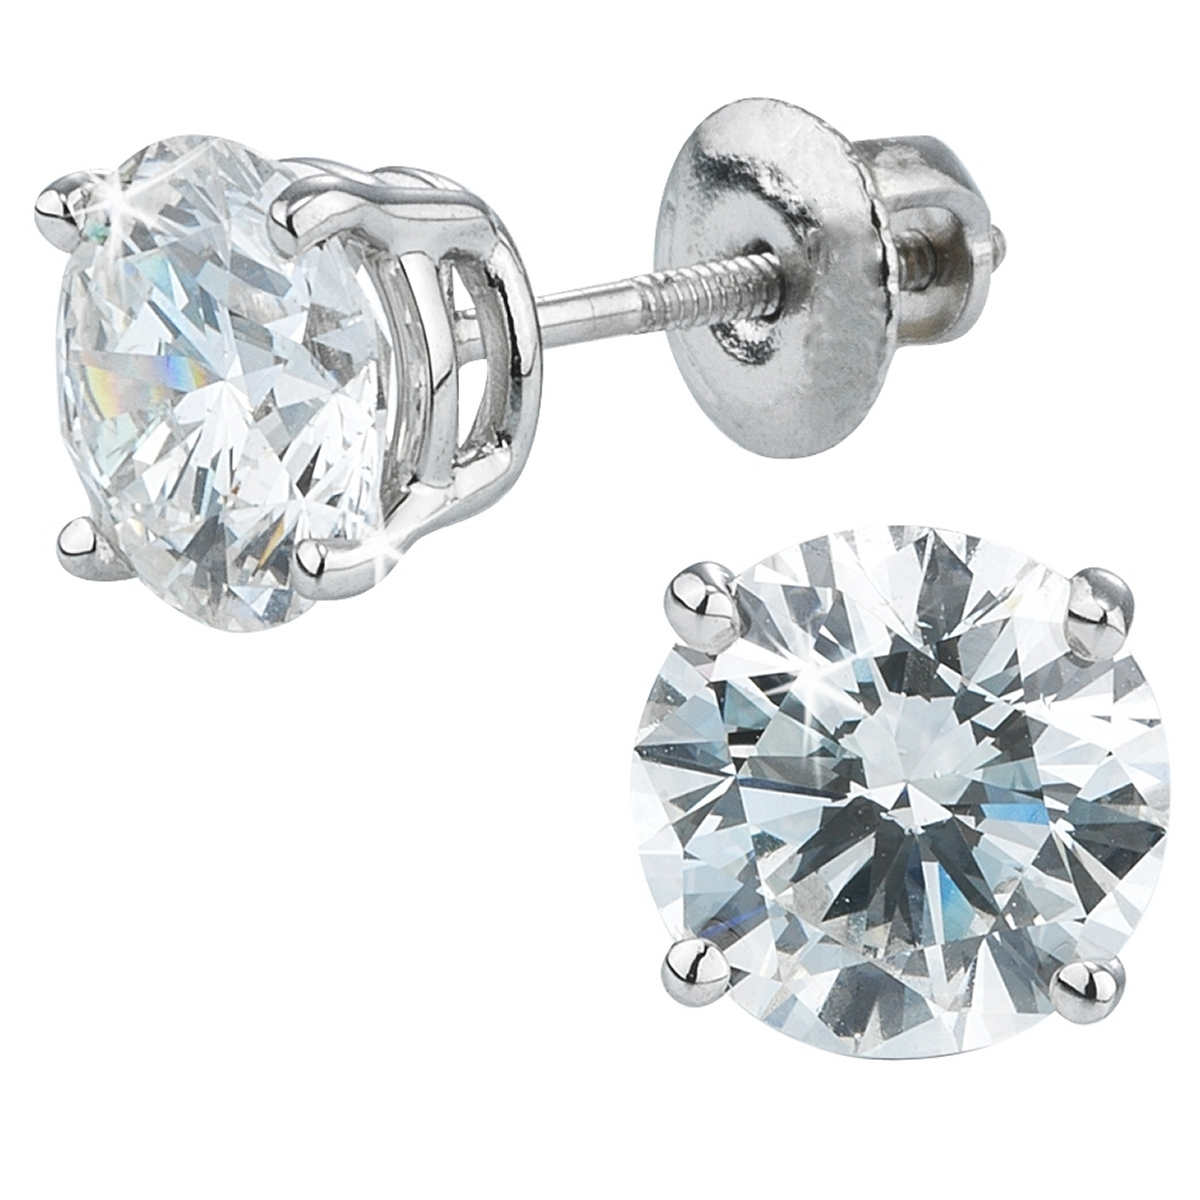 Round Brilliant 180 Ctw Vs2 Clarity, I Color Diamond 14kt White Gold  Screwback Stud Earrings